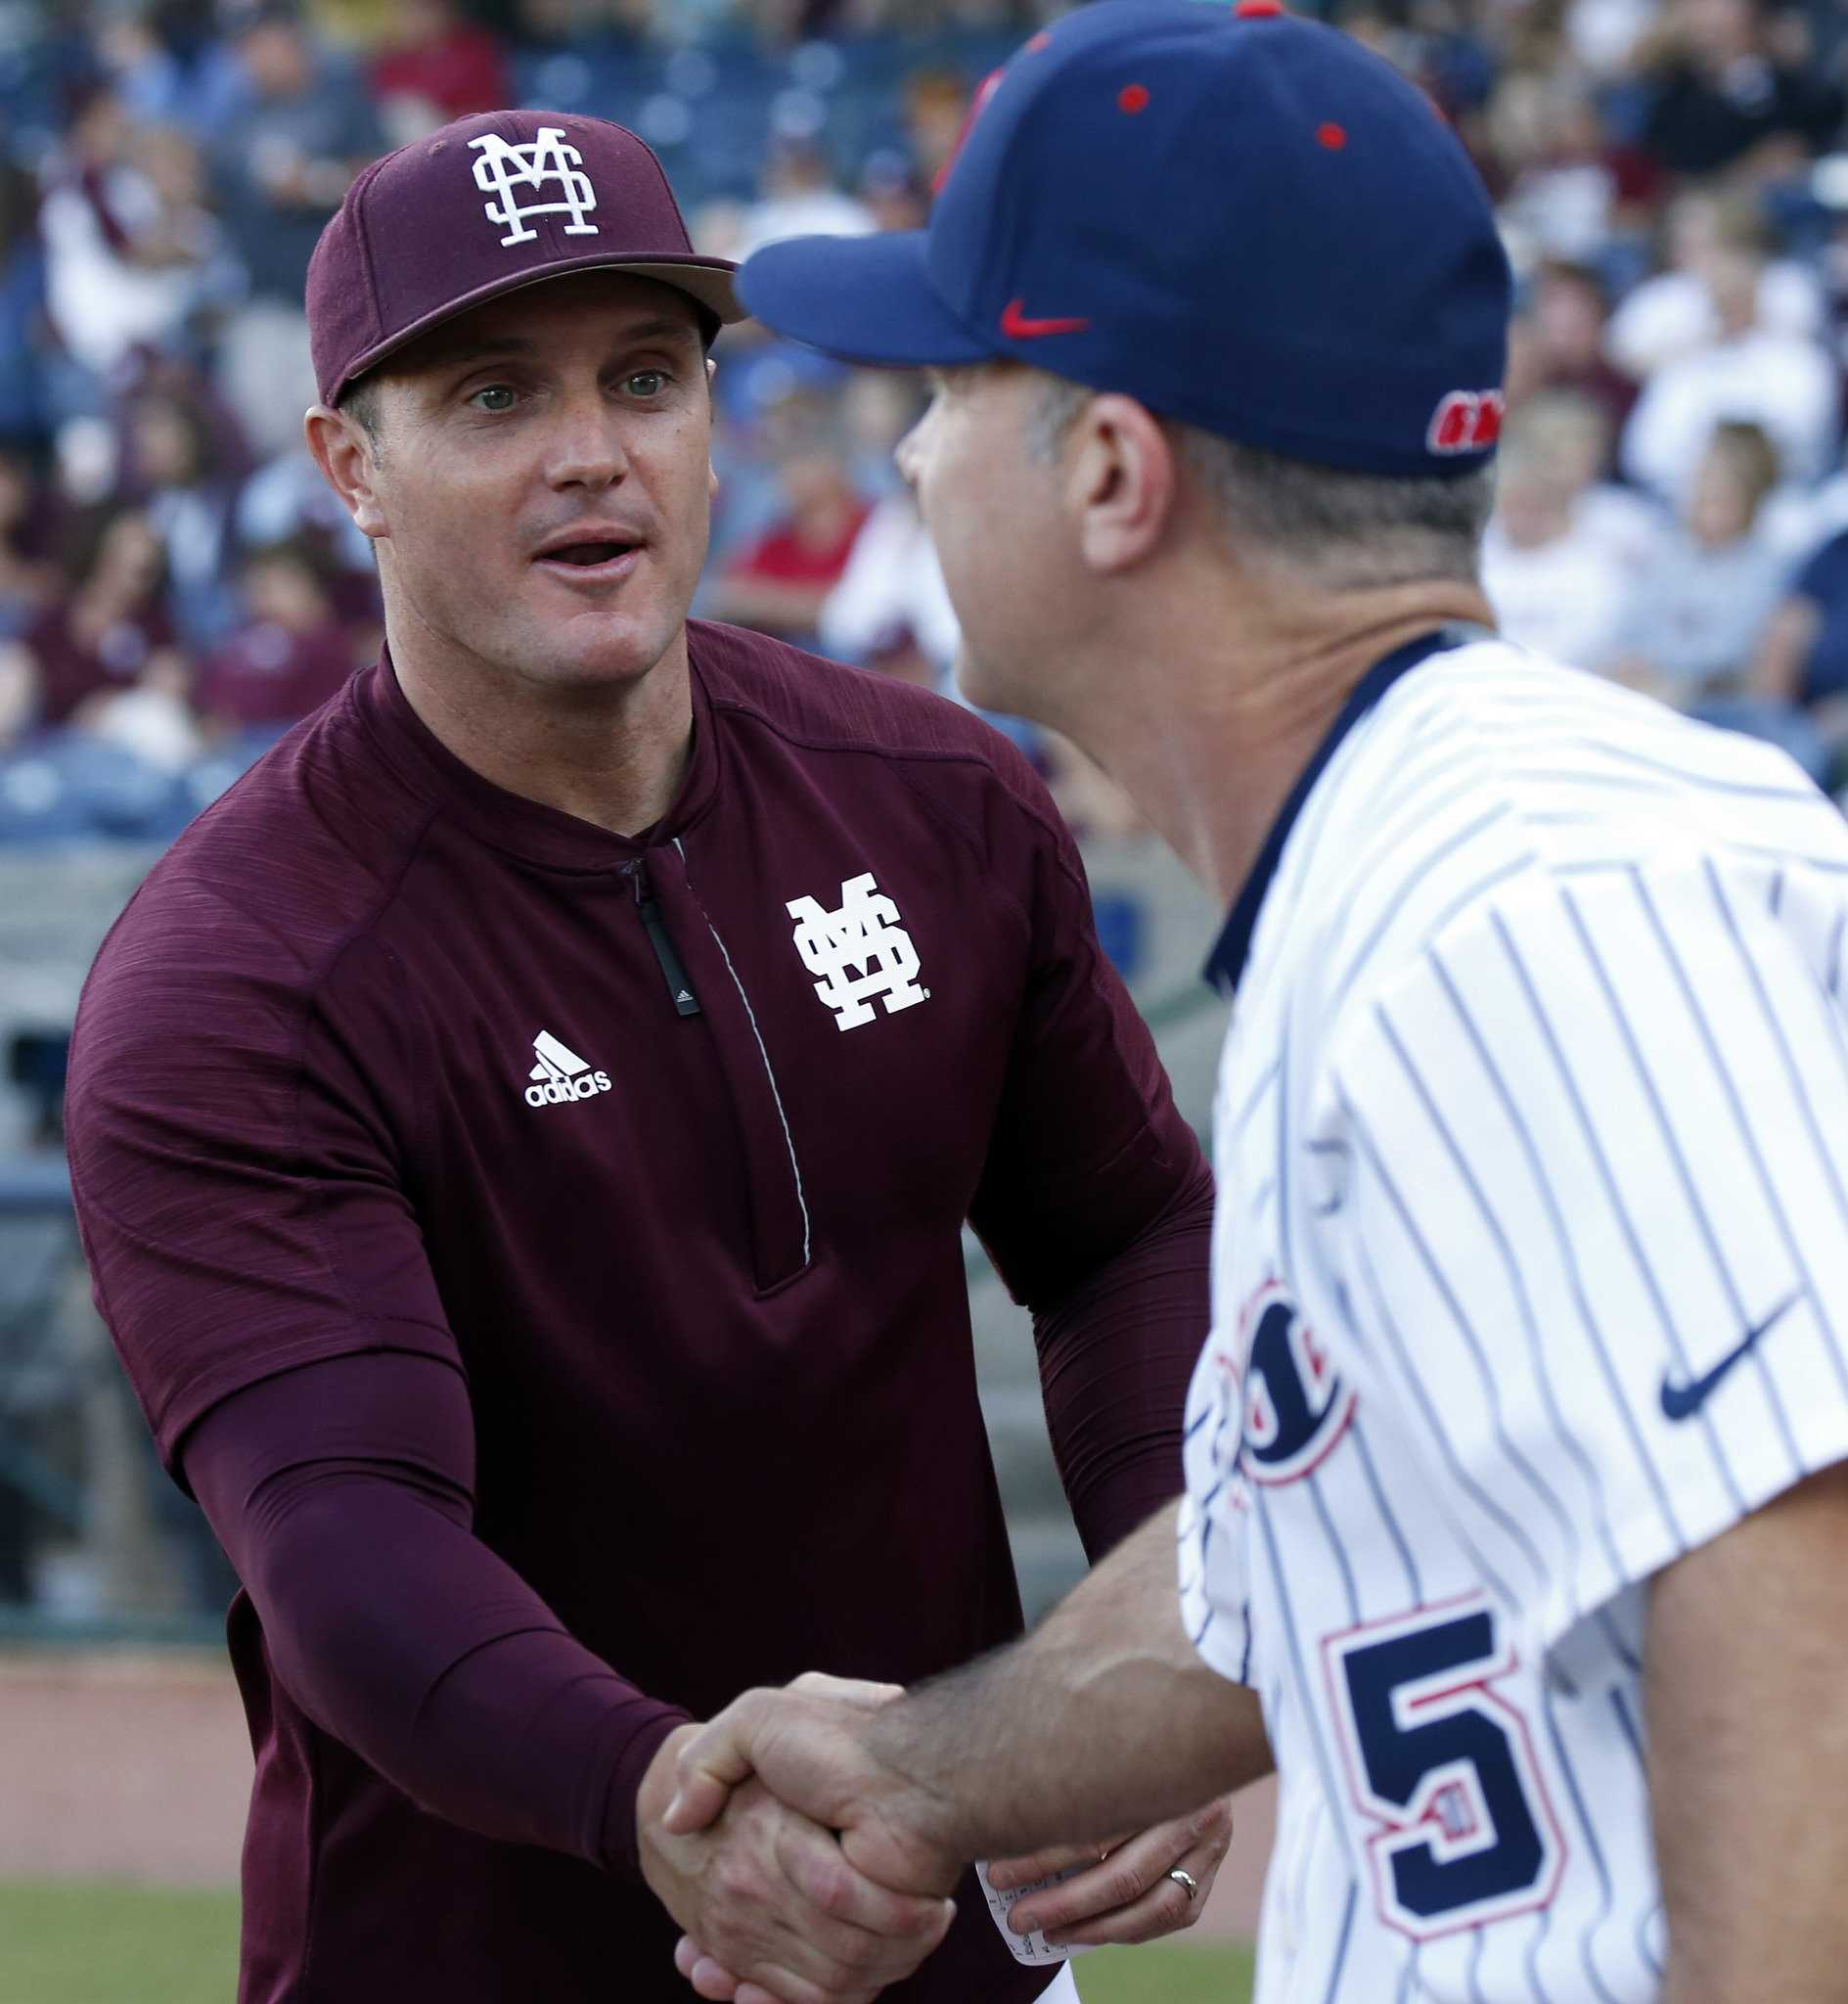 Andy Cannizaro resigns from Mississippi State, cites 'poor decisions'